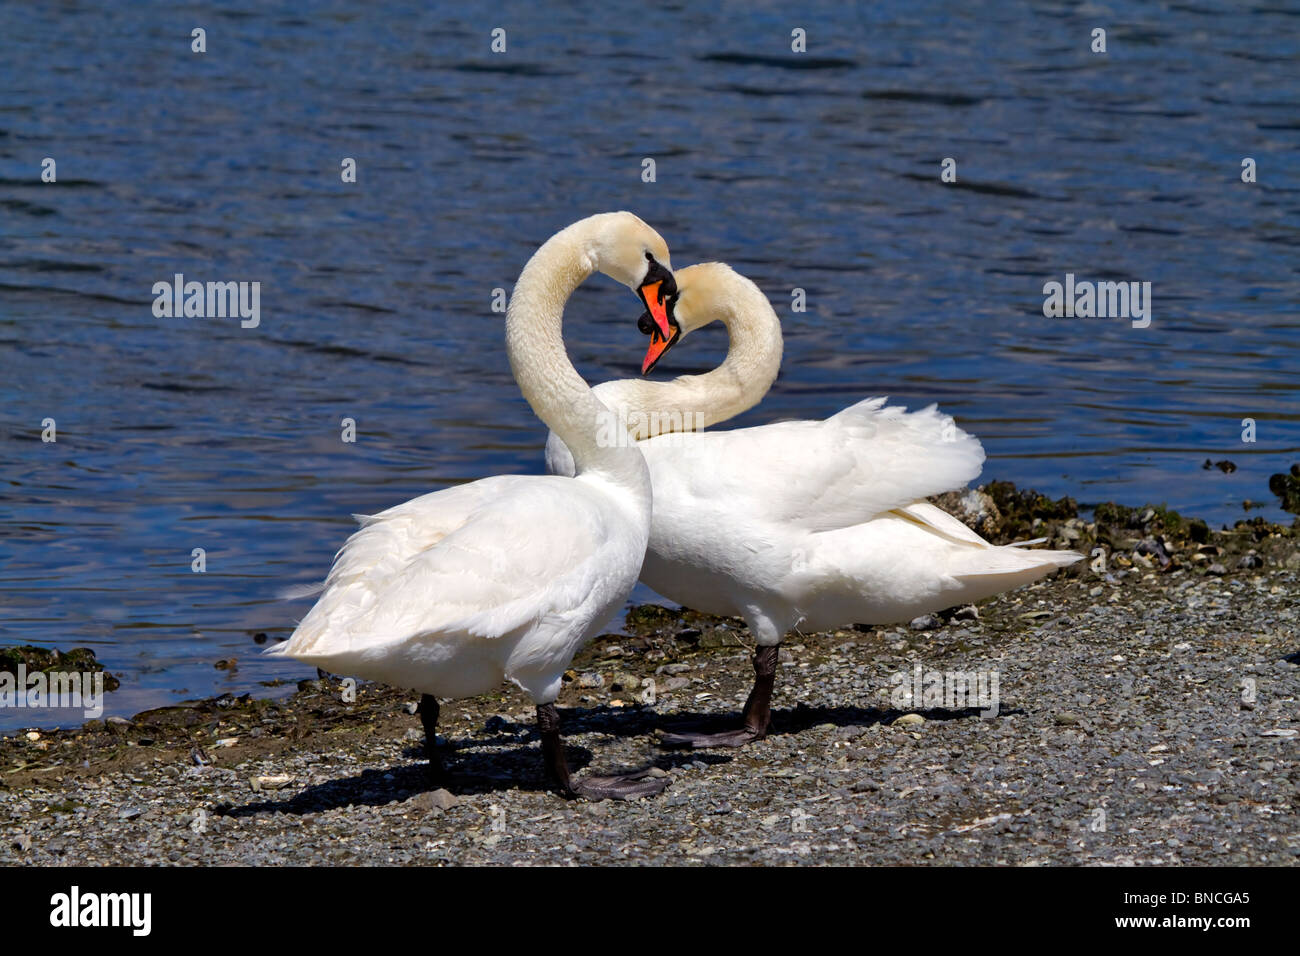 A pair of mute swans, Cygnus olor, courting in spring. Curving necks form a heart shape. Stock Photo